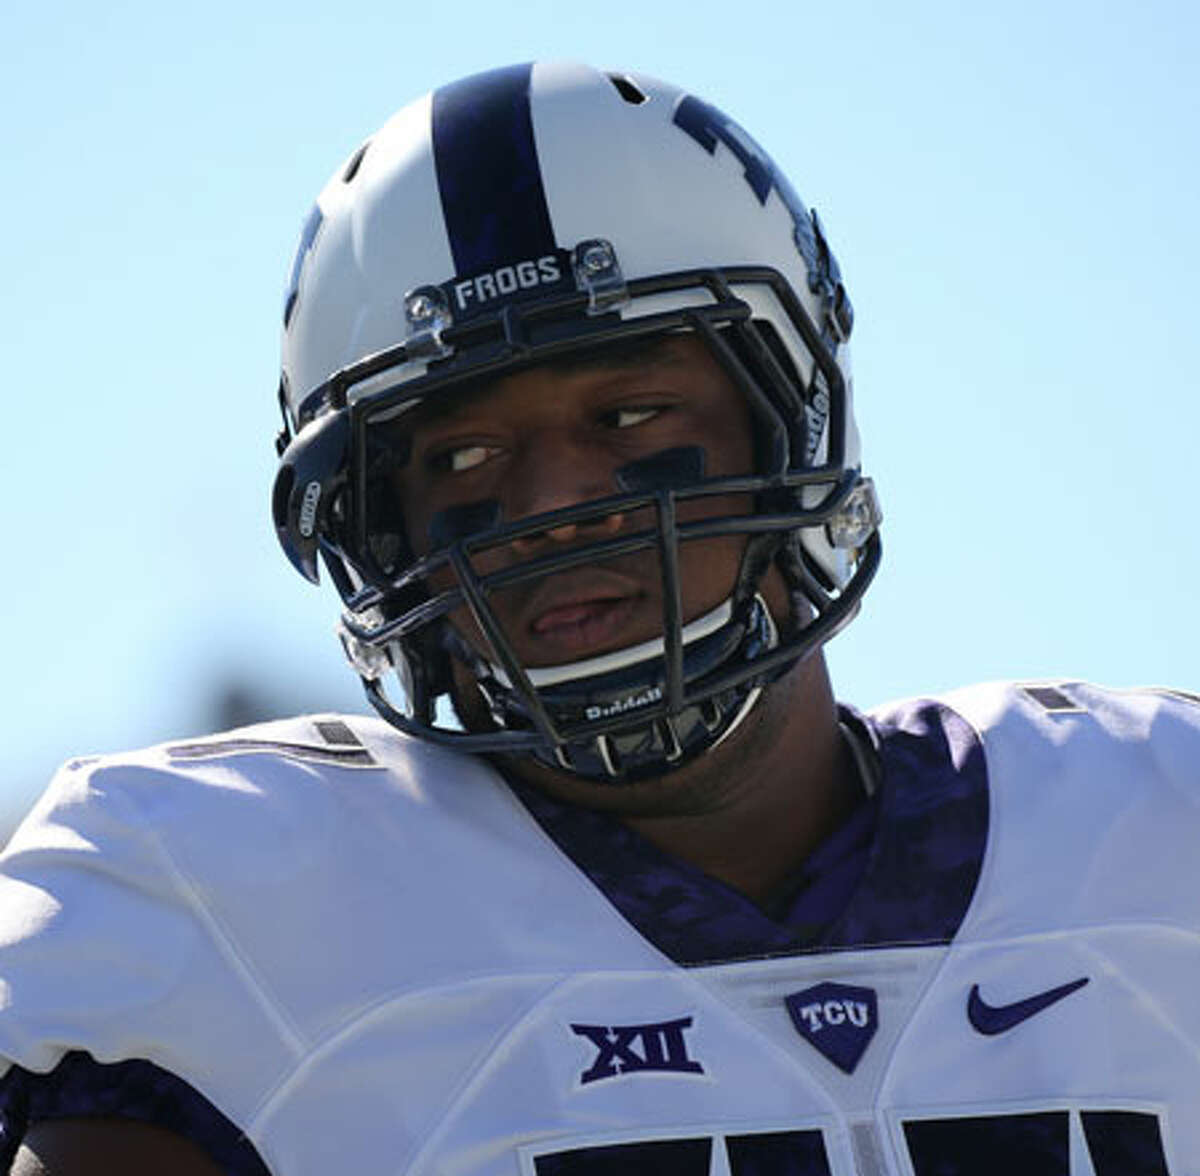 TCU Horned Frogs offensive lineman Lucas Niang. - Photo by Scott Winters/Icon Sportswire via Getty Images